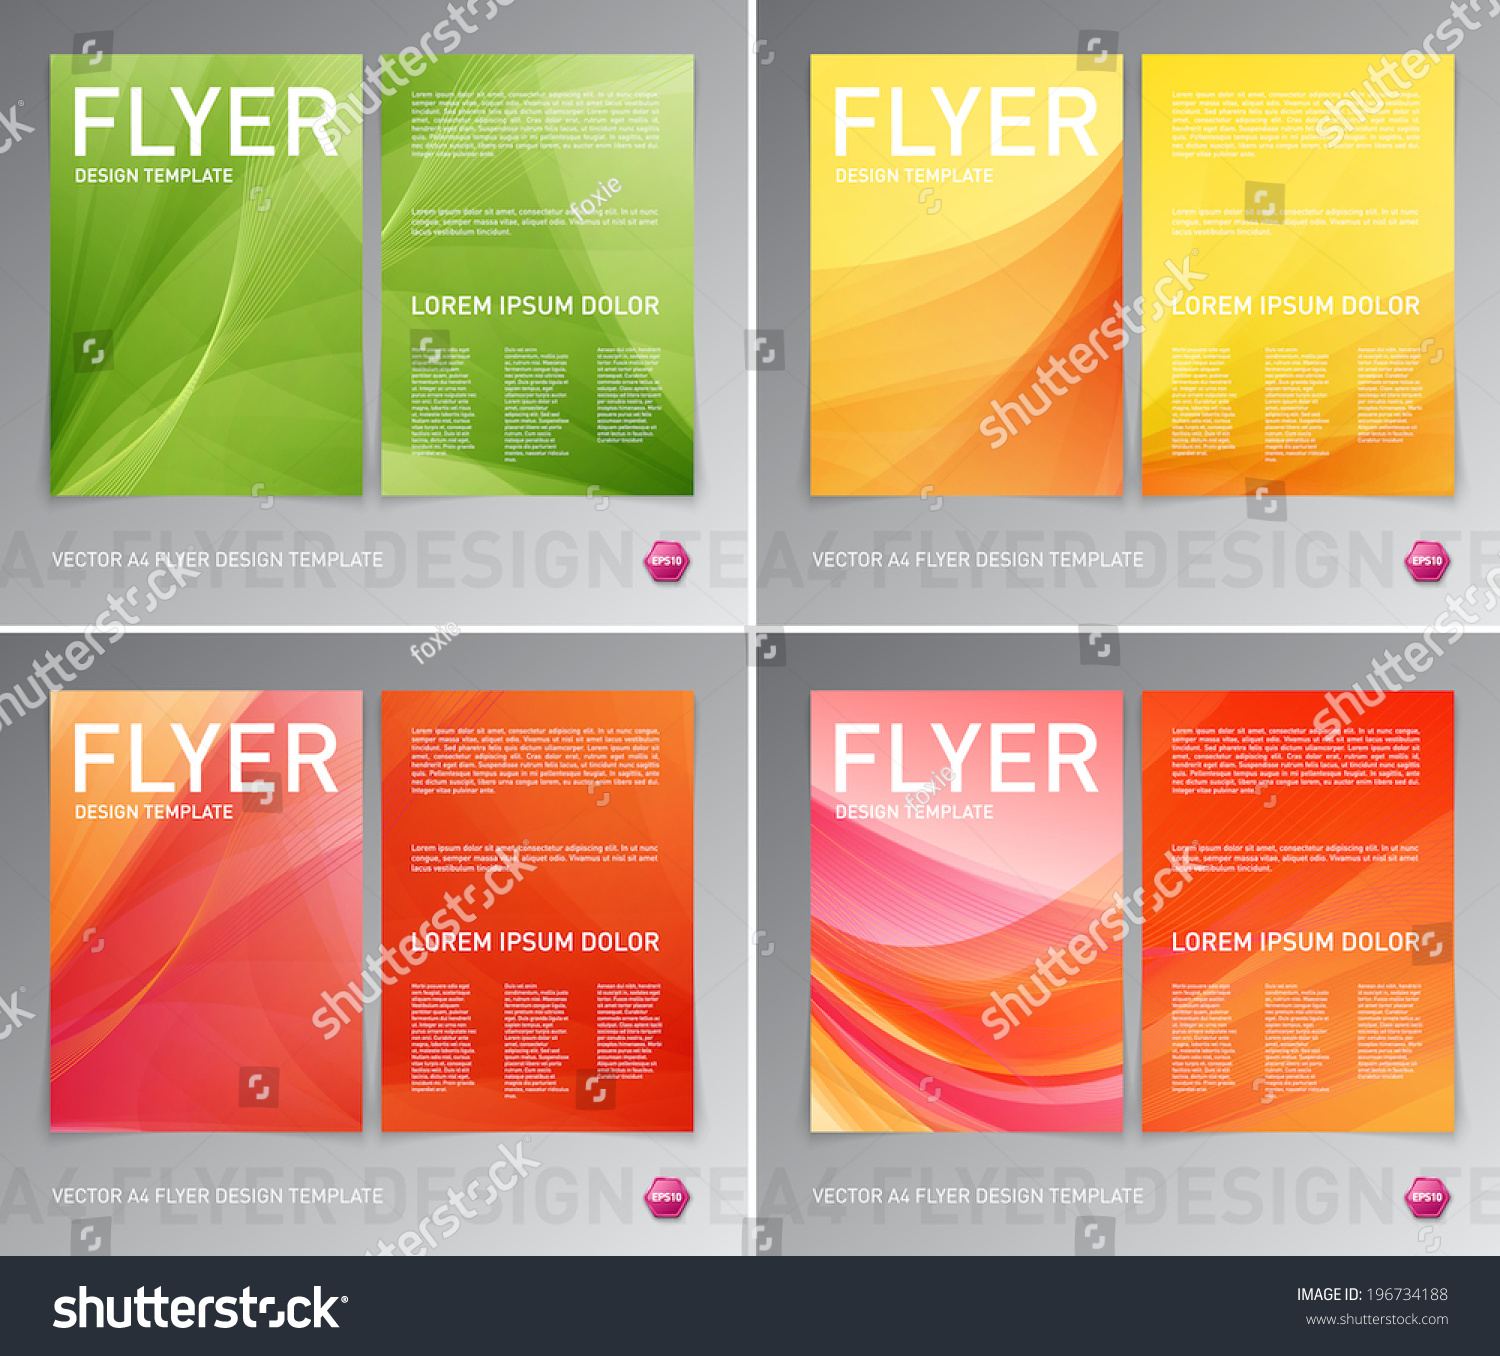 Abstract Vector Modern Flyer / Brochure Design Templates Collection. Smooth  Colorful Backgrounds. #196734188  Flyer Samples Templates